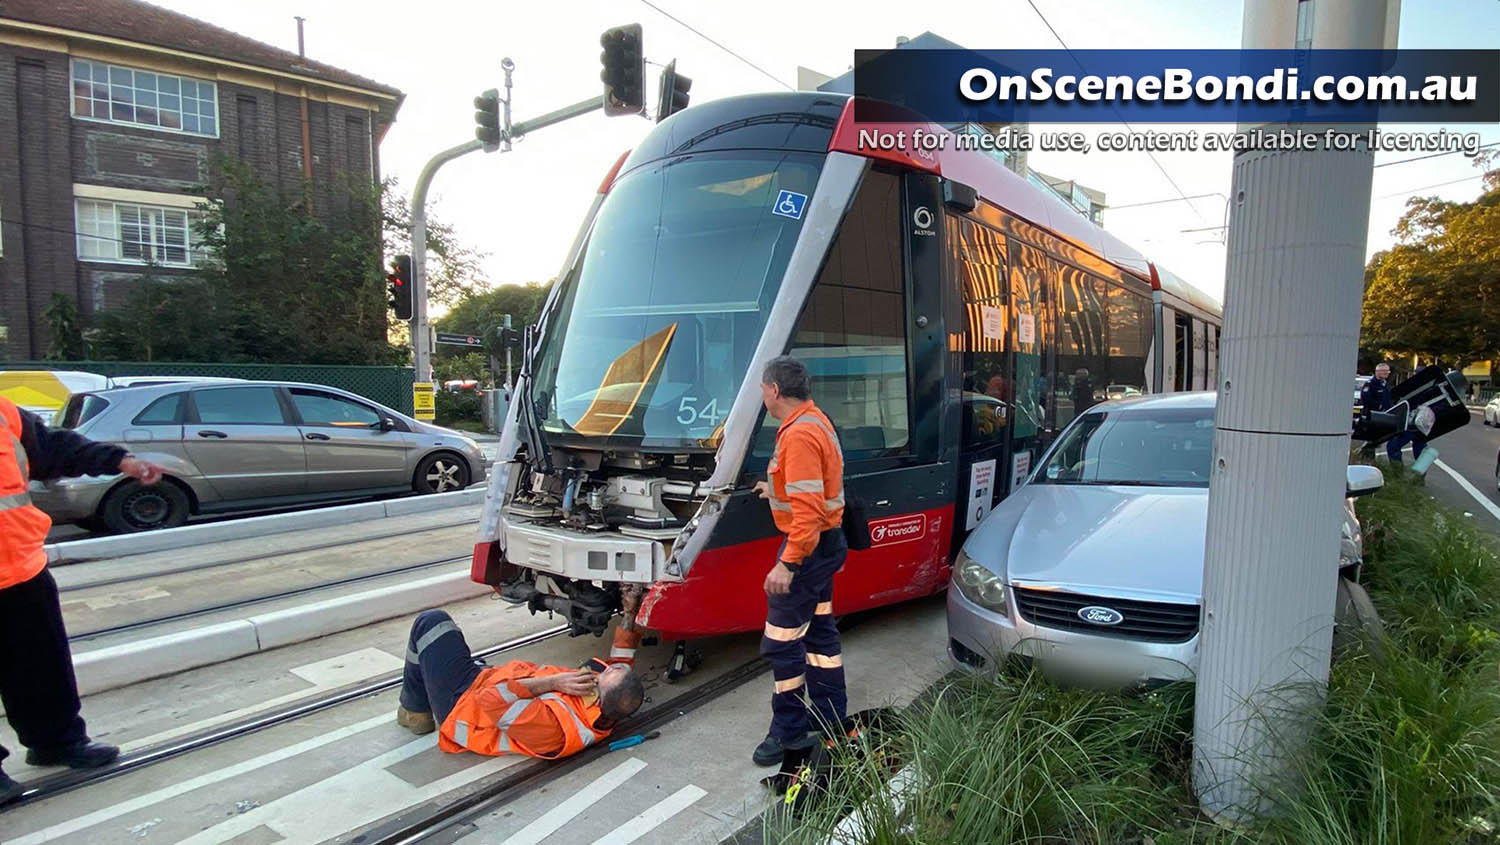 Light rail and car crashes in Kensington